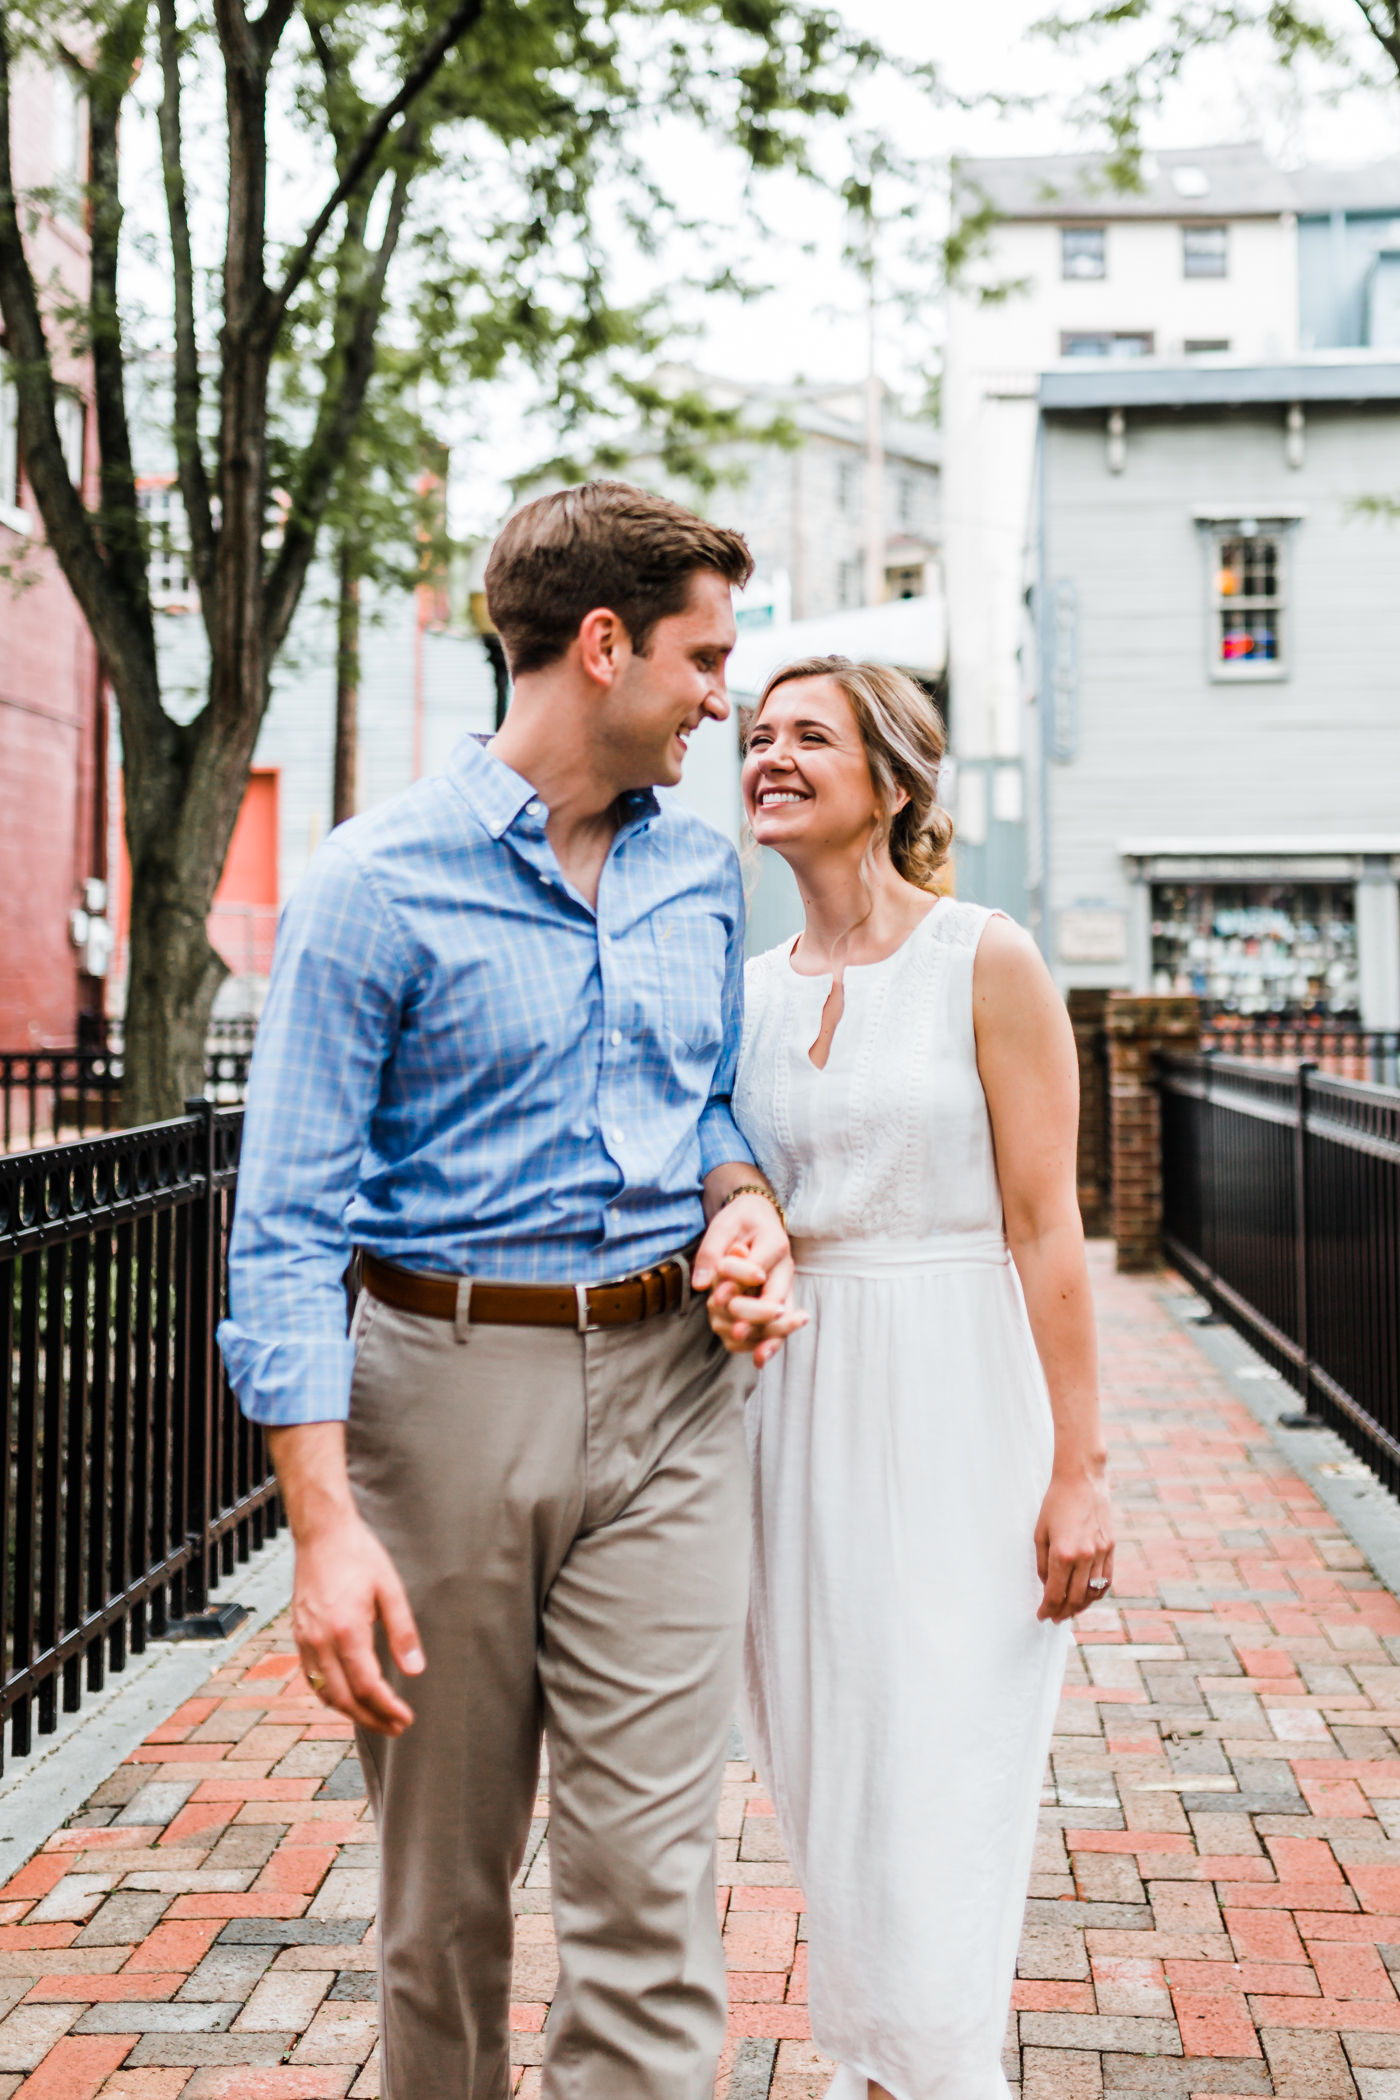 adorable couple poses in city setting in Maryland